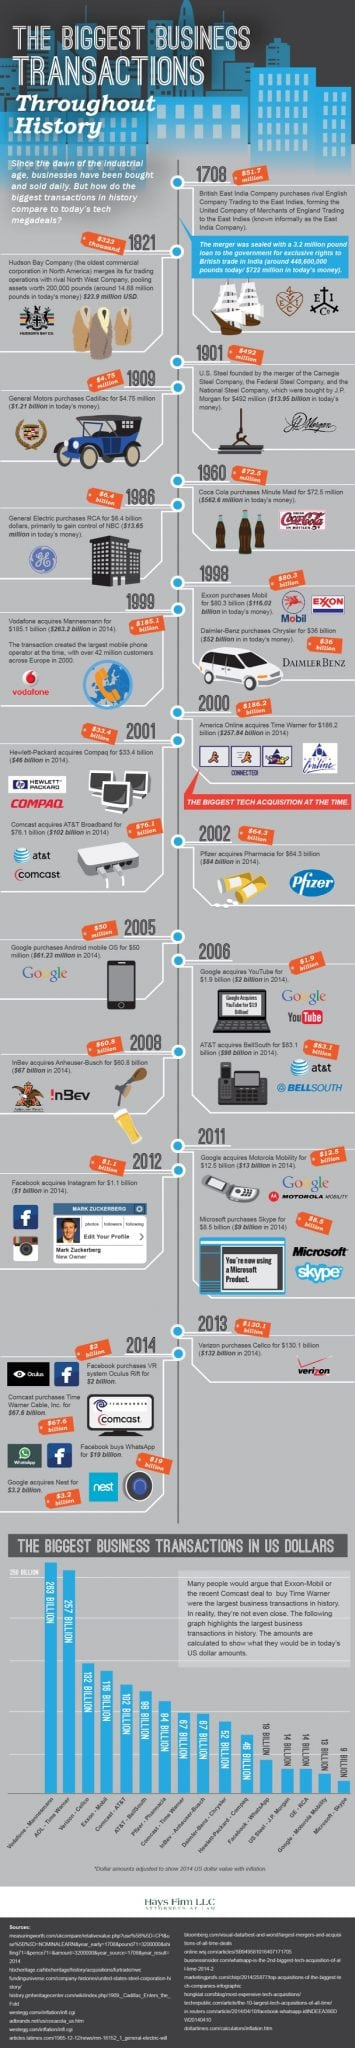 Photo of The Biggest Business Transactions Throughout History [INFOGRAPHIC]